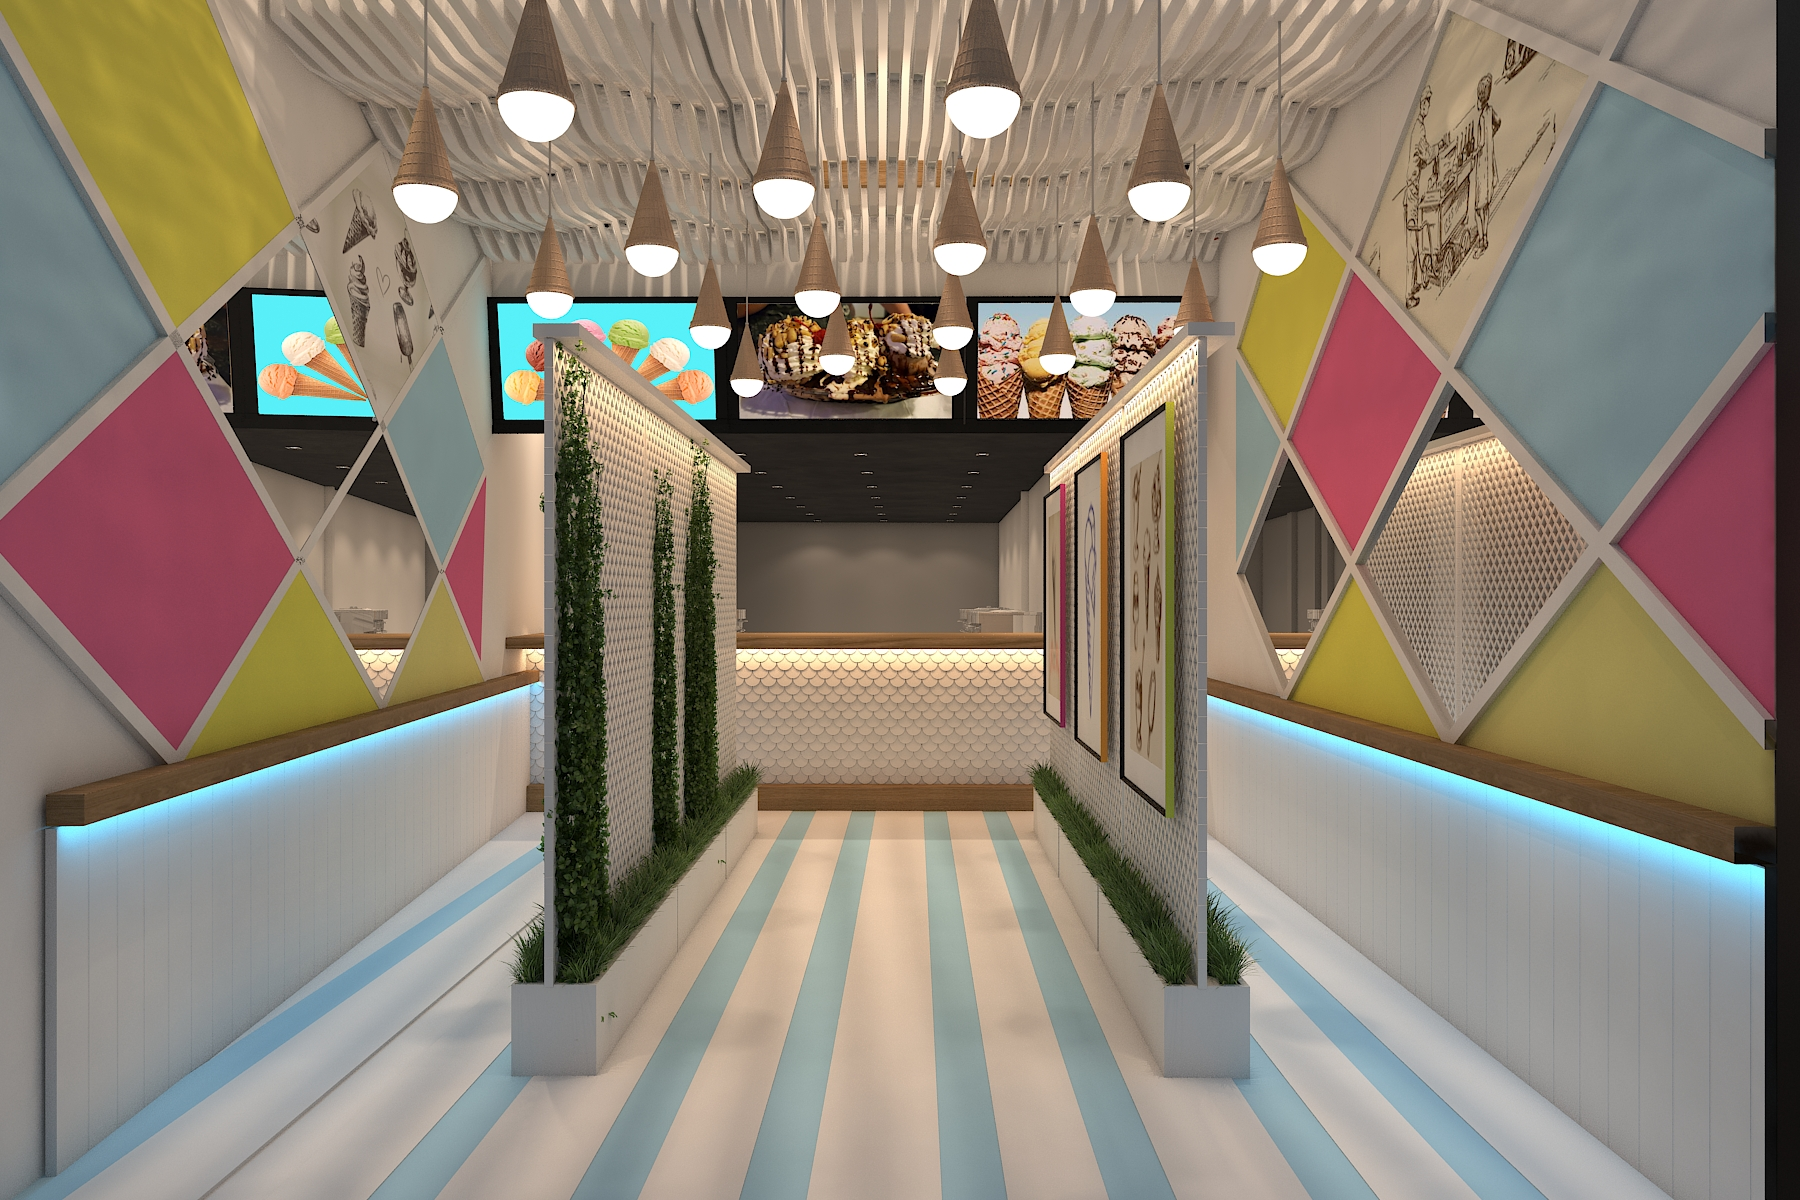 Waffles By Alamgir Main Market Lahore Interior Design Services